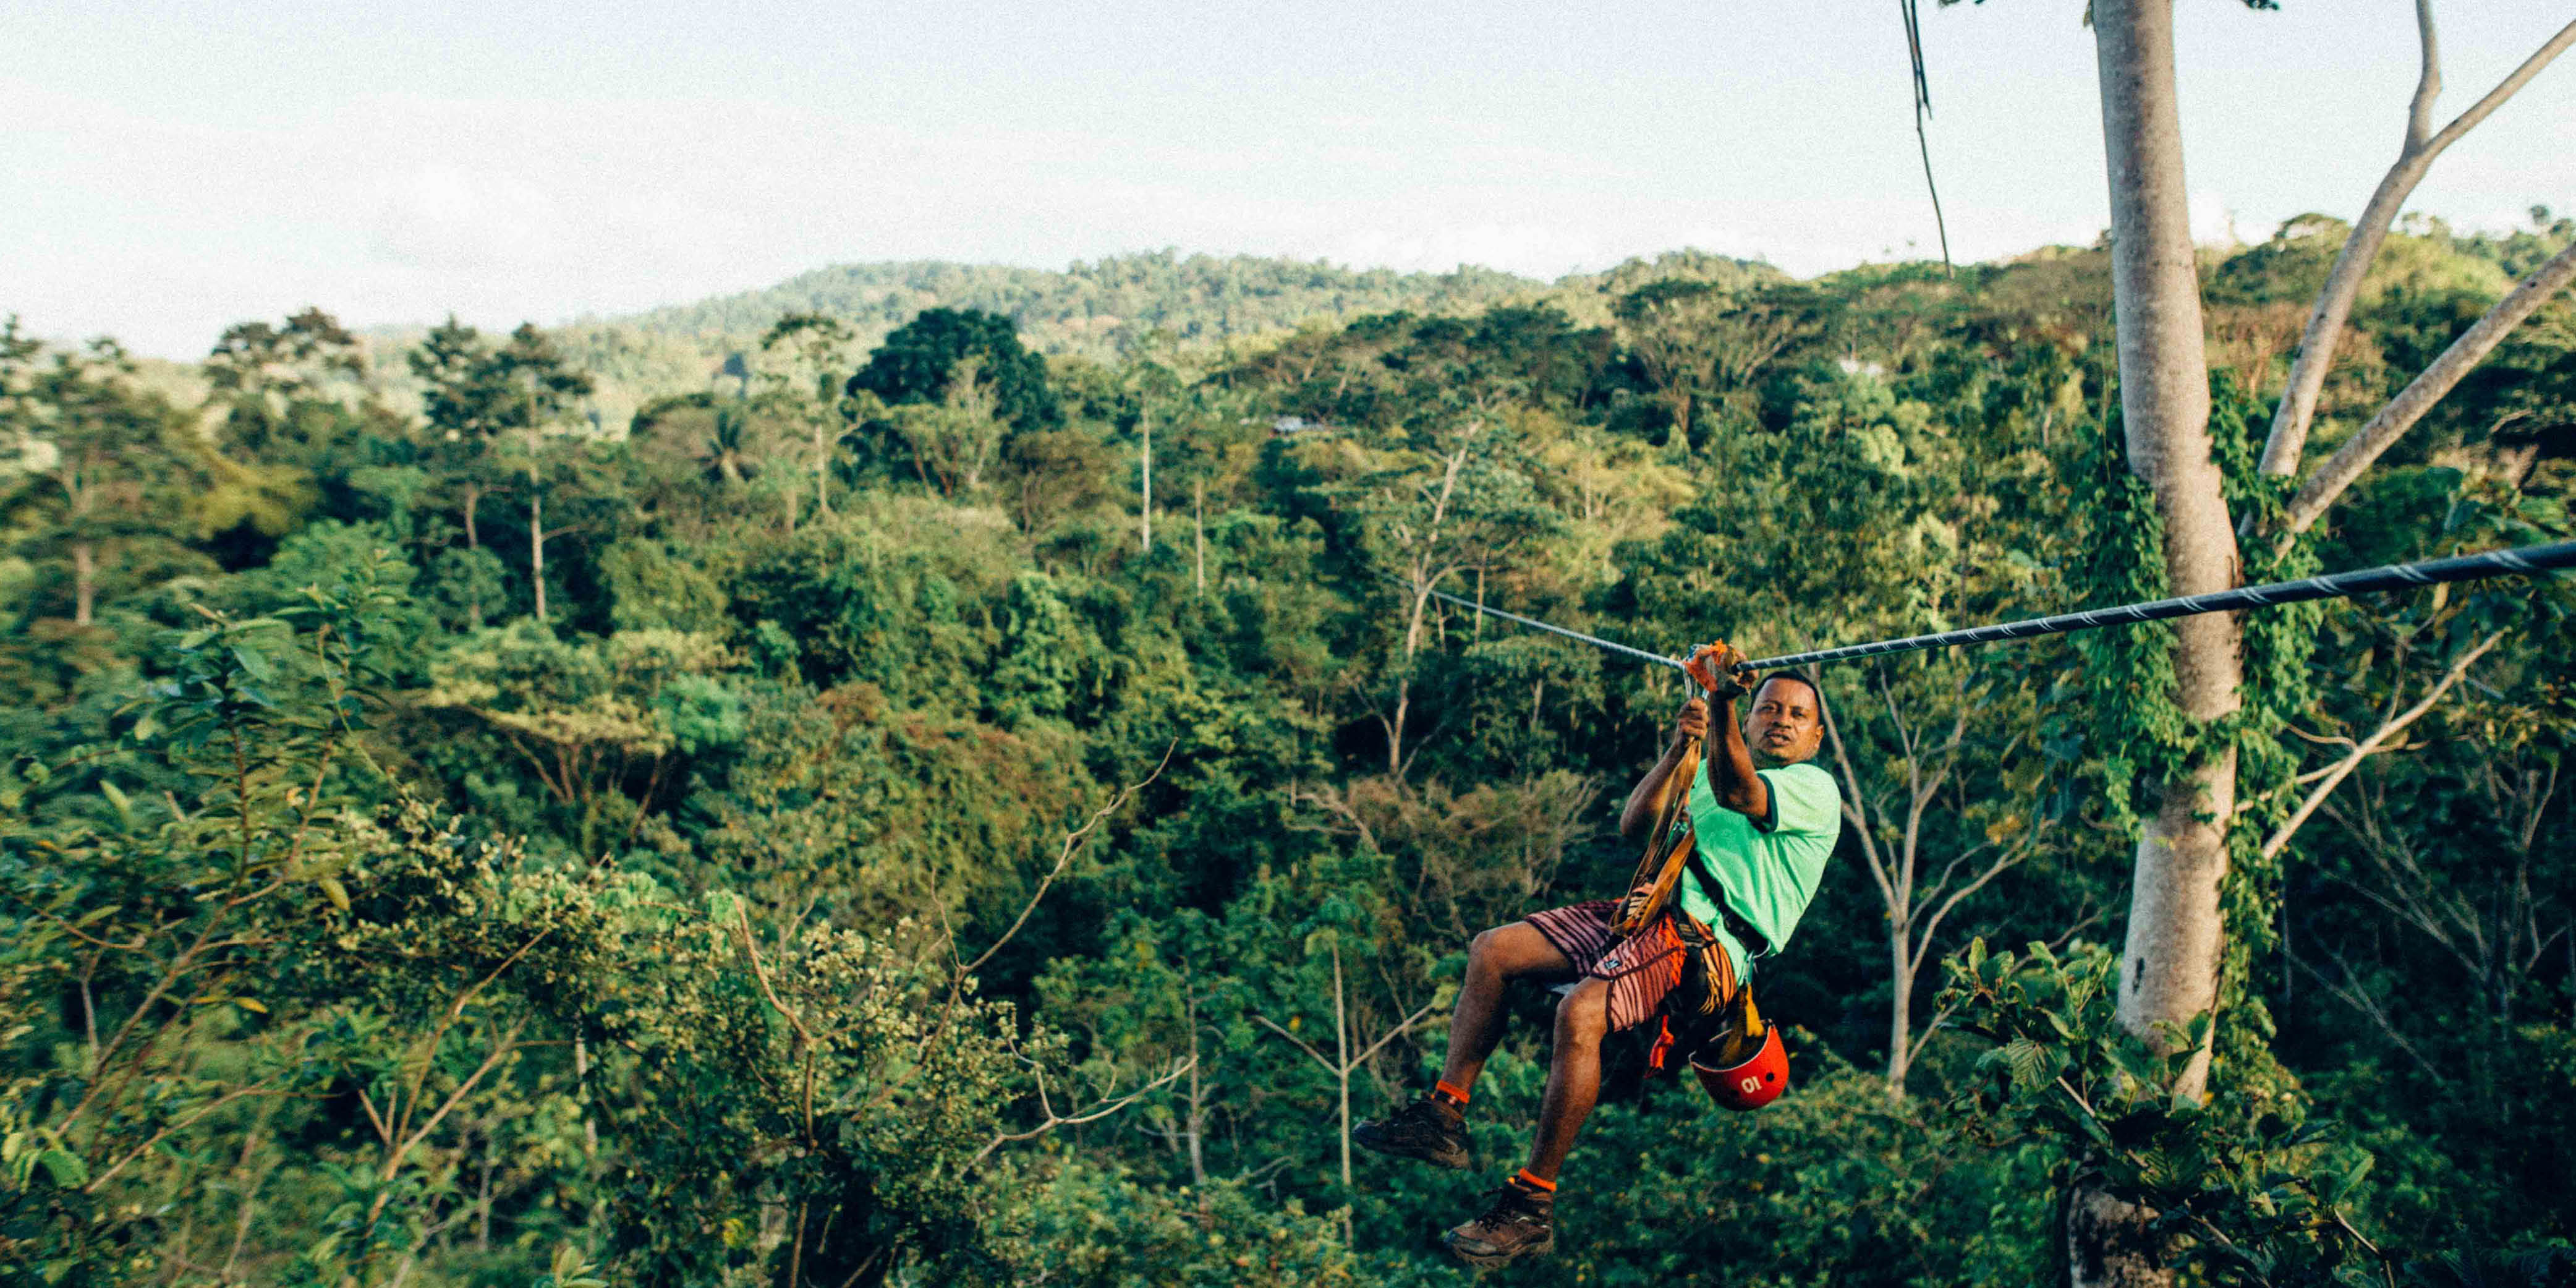 Zip lining in Arenal, Costa Rica 2021 holiday ideas